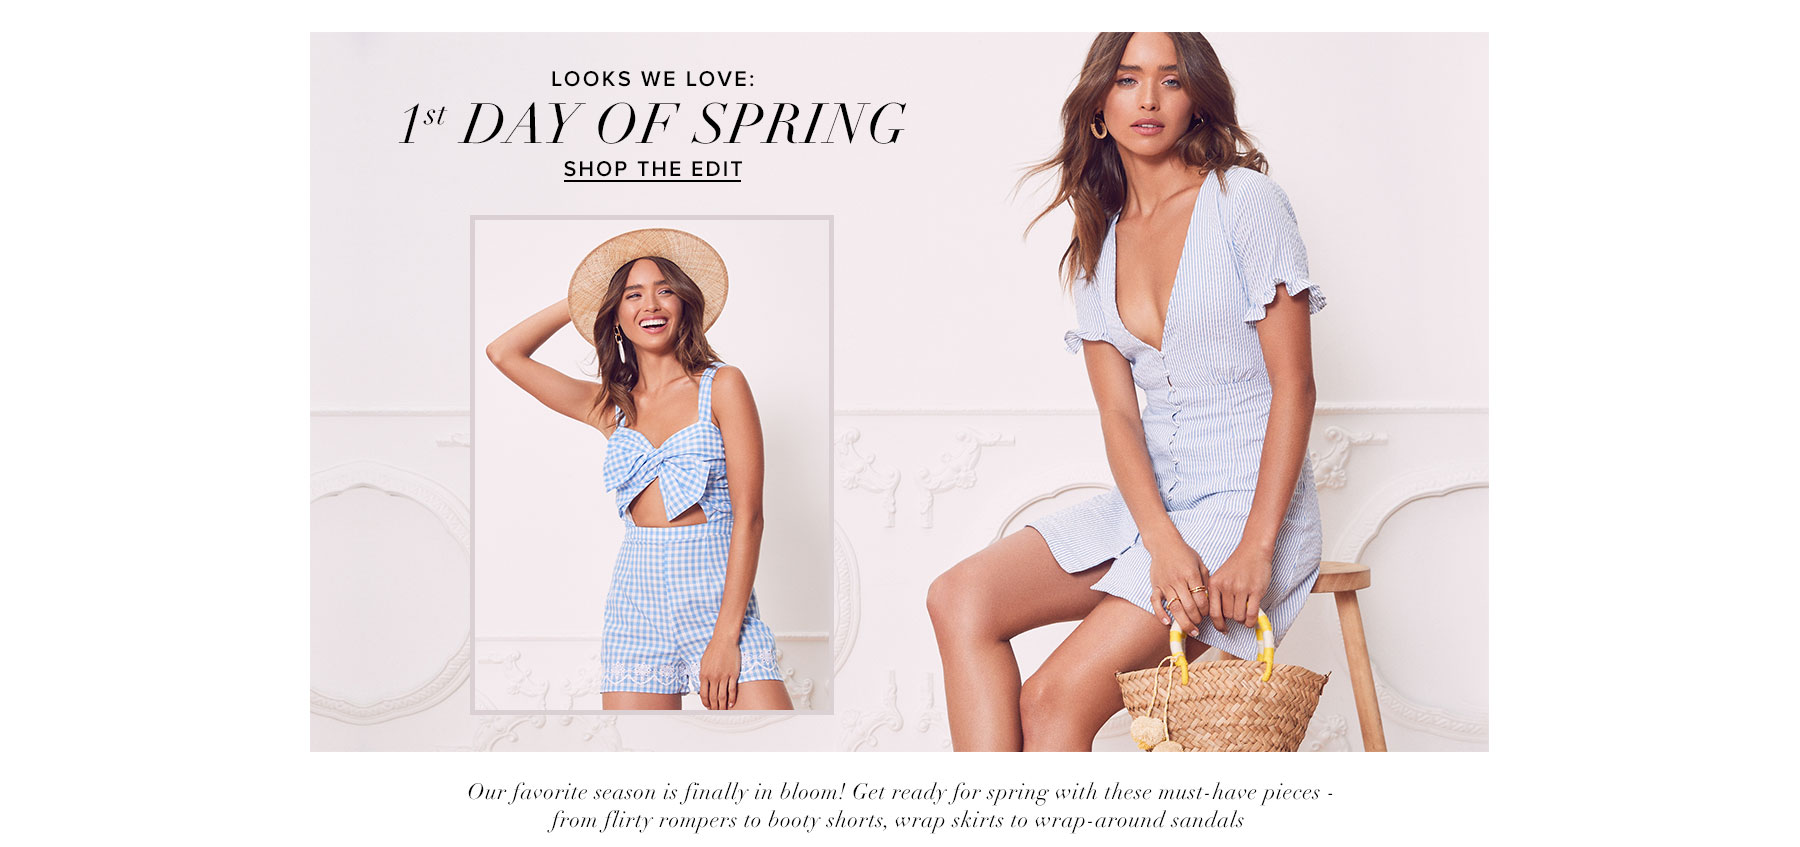 Looks We Love: 1st Day of Spring. Shop the edit. Our favorite season is finally in bloom! Get ready for spring with these must-have pieces -  from flirty rompers to booty shorts, wrap skirts to wrap-around sandals.